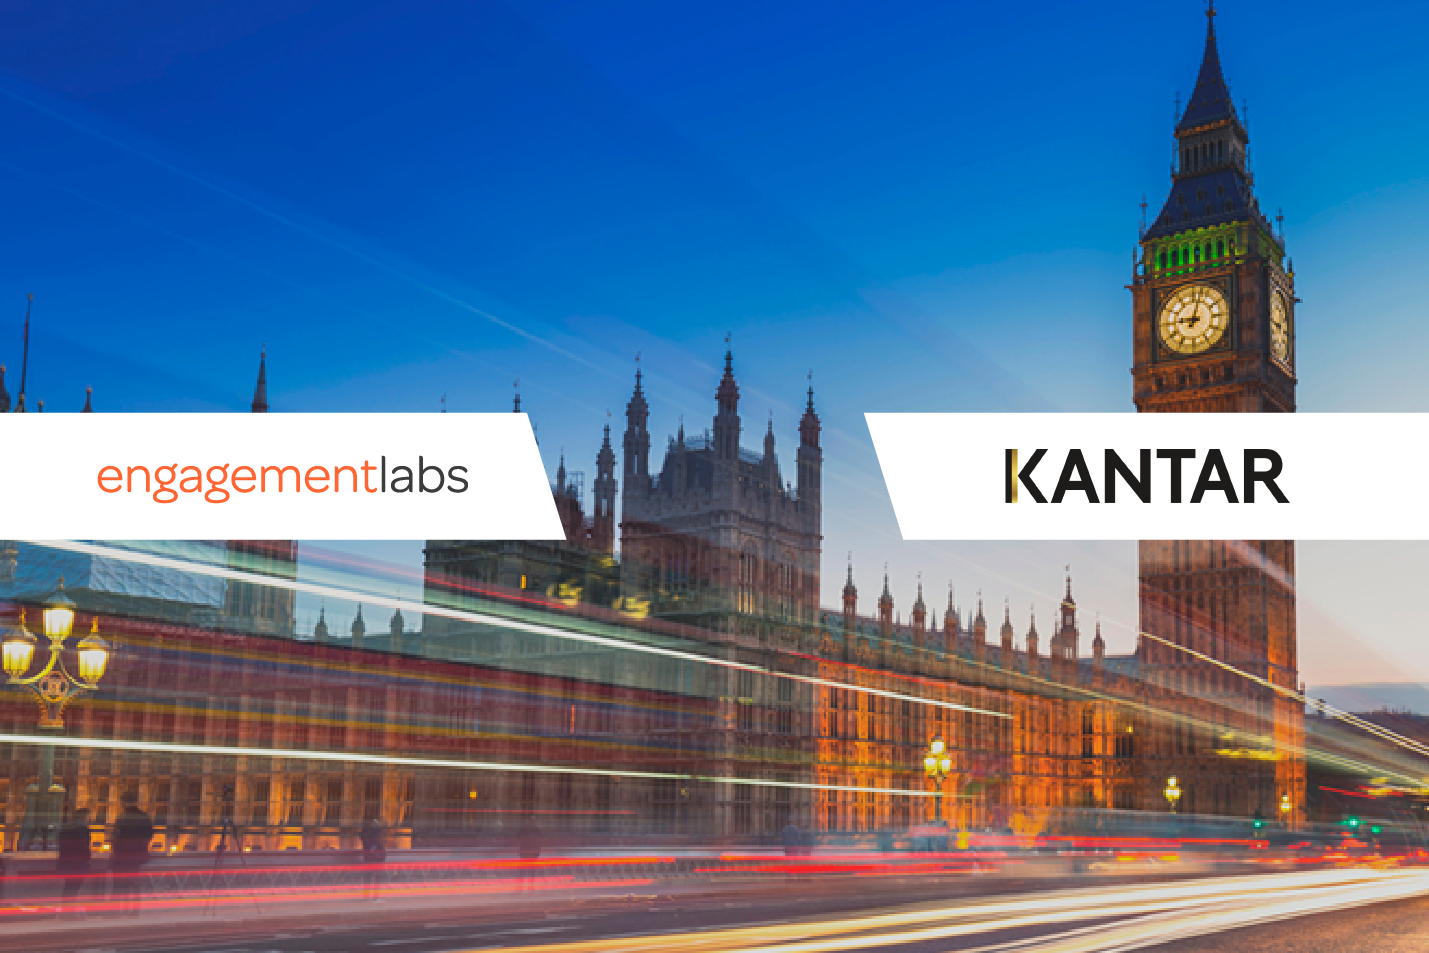 Engagement Labs' Partnership with Kantar: Building Long-term Brand Value with Consumer Conversation